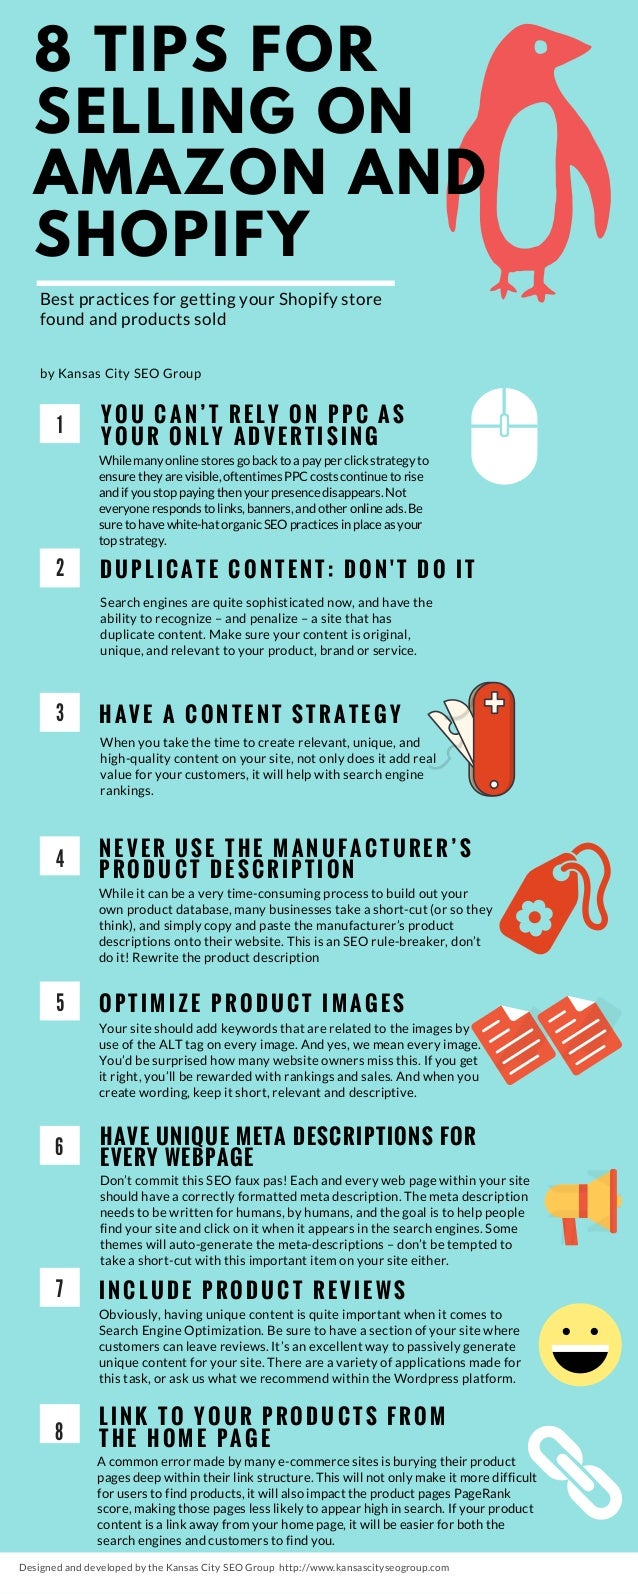 8 tips for selling on Amazon and Shopify  kansas city seo